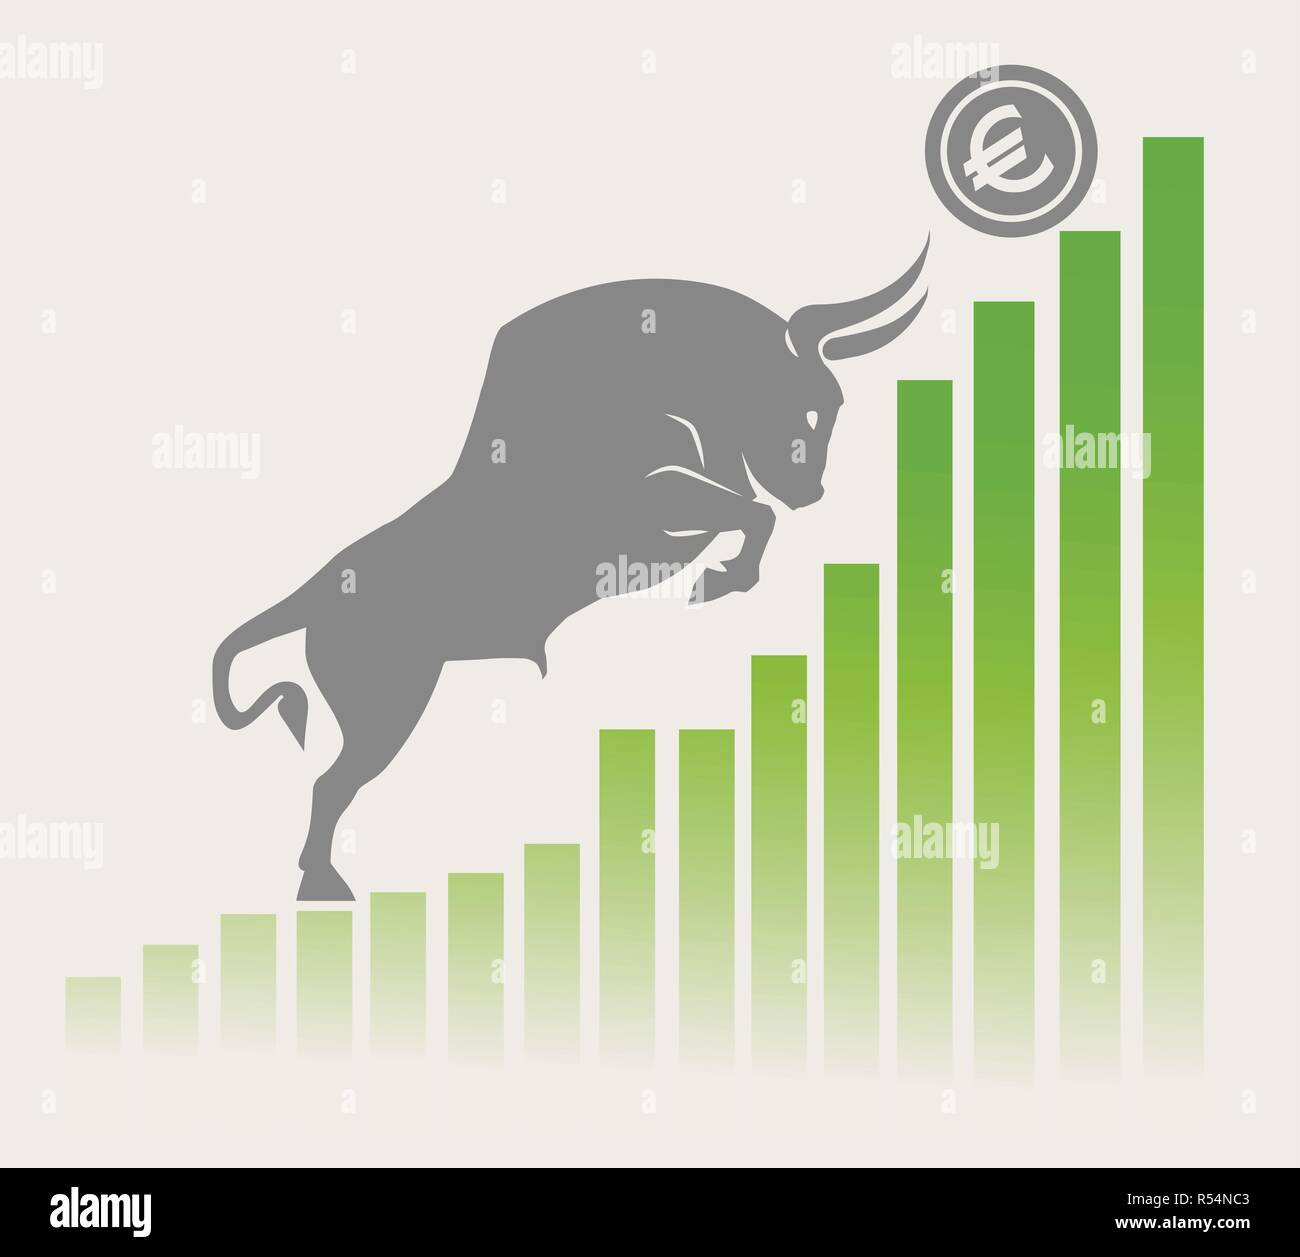 Bull moves Euro up on graph, positive currency market, grey background Stock Vector